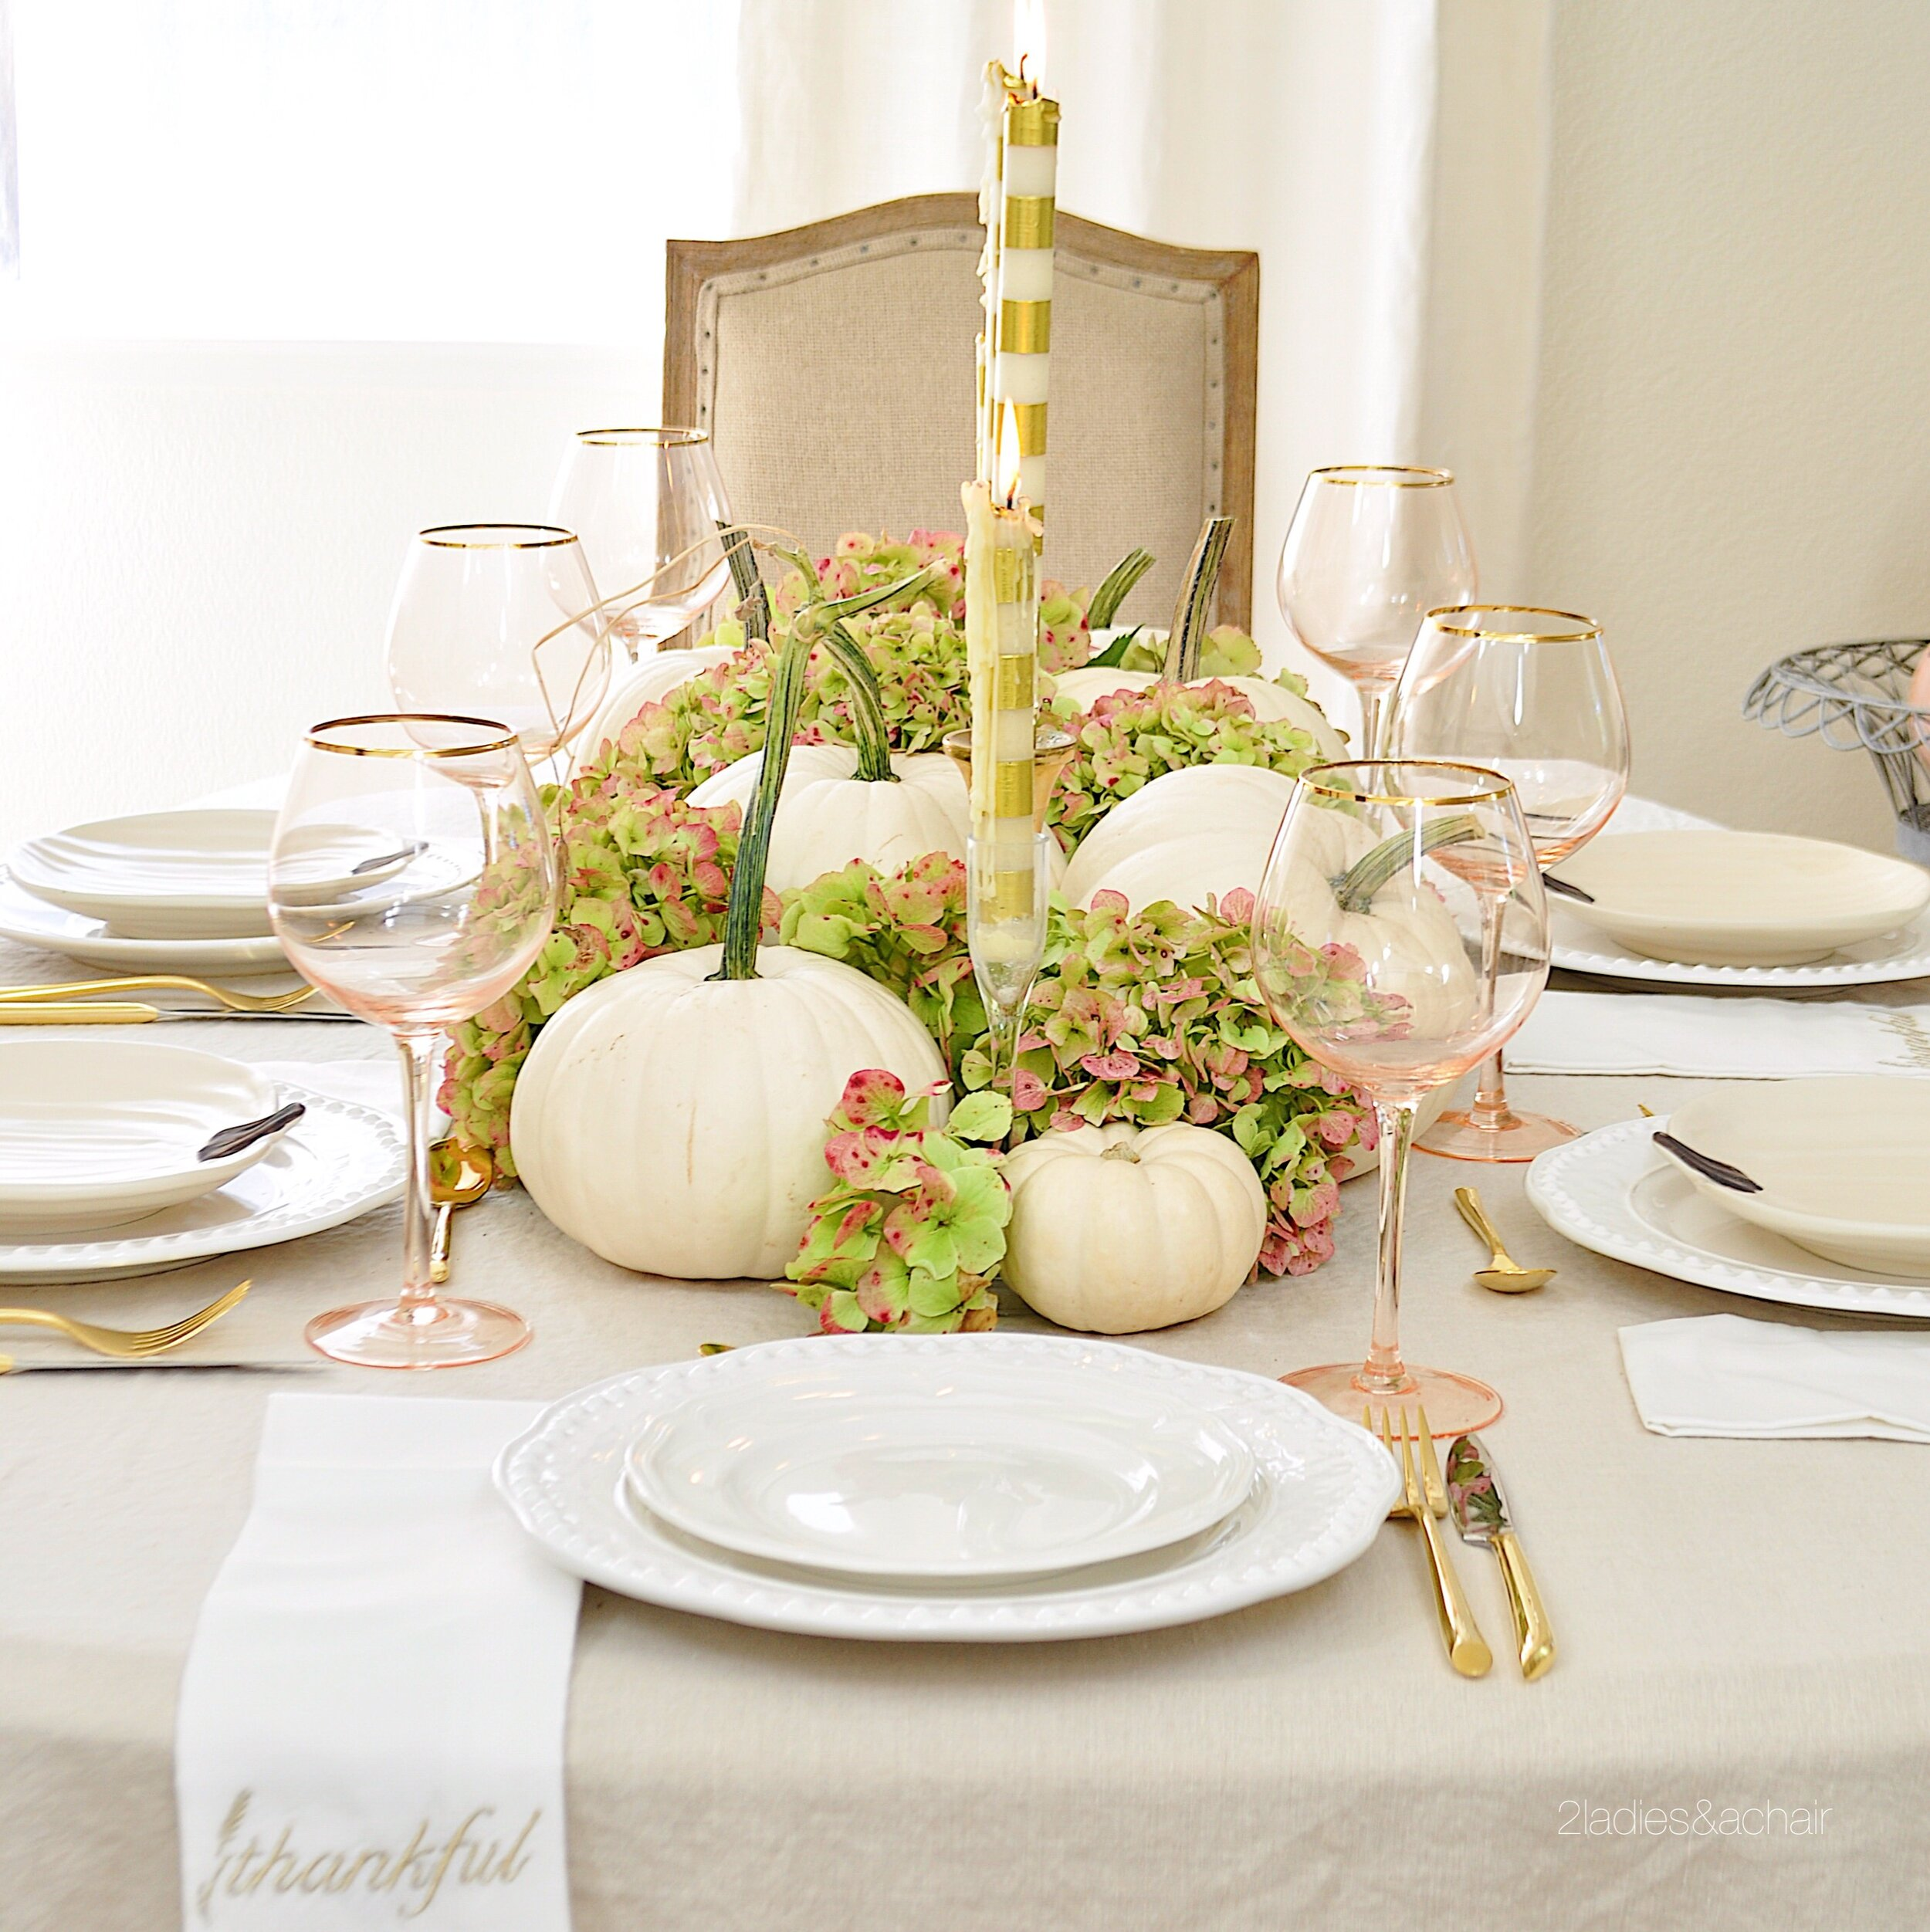 thanksgiving table IMG_1480.JPG